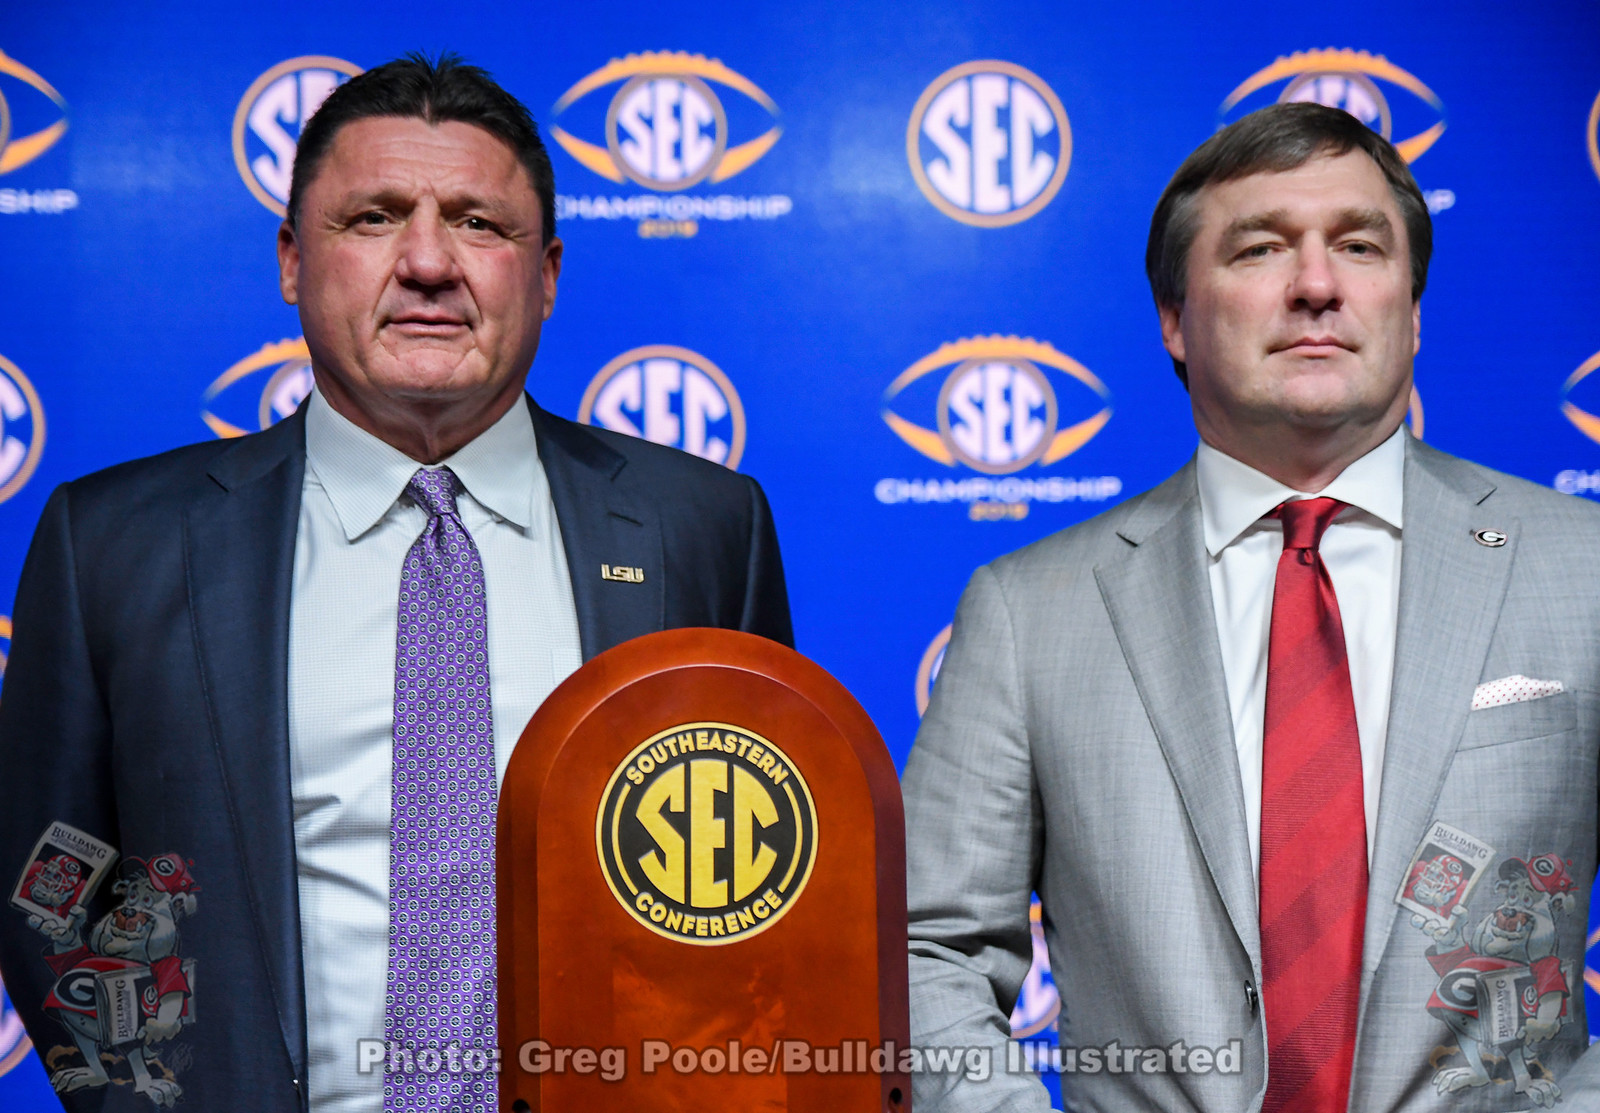 LSU head coach Ed Orgeron (left) and UGA head coach Kirby Smart (right), 2019 SEC Championship pregame press conference, Friday, December 6, 2019